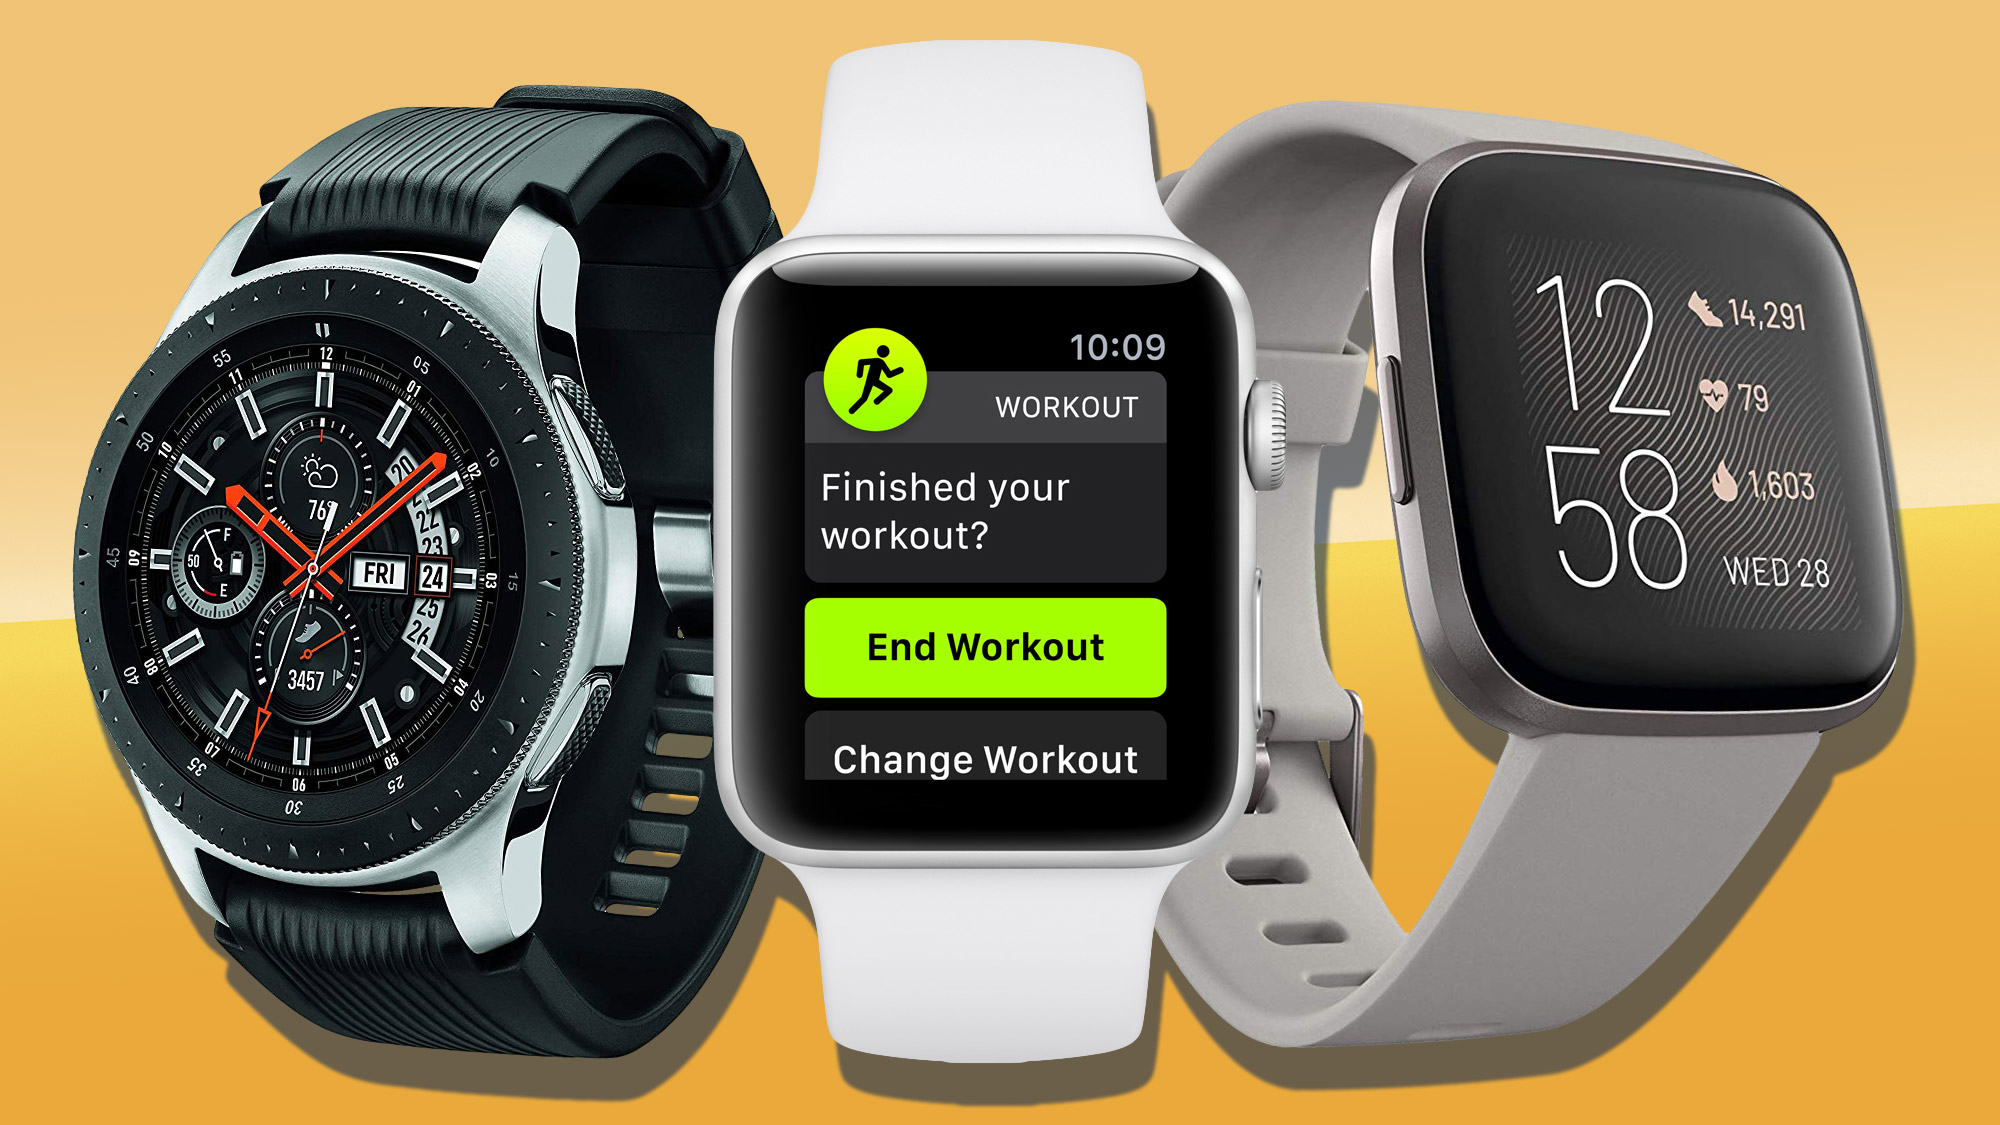 Best Smartwatch For Iphone 2021 Apple Watch Wear Os Tizen And More Techradar